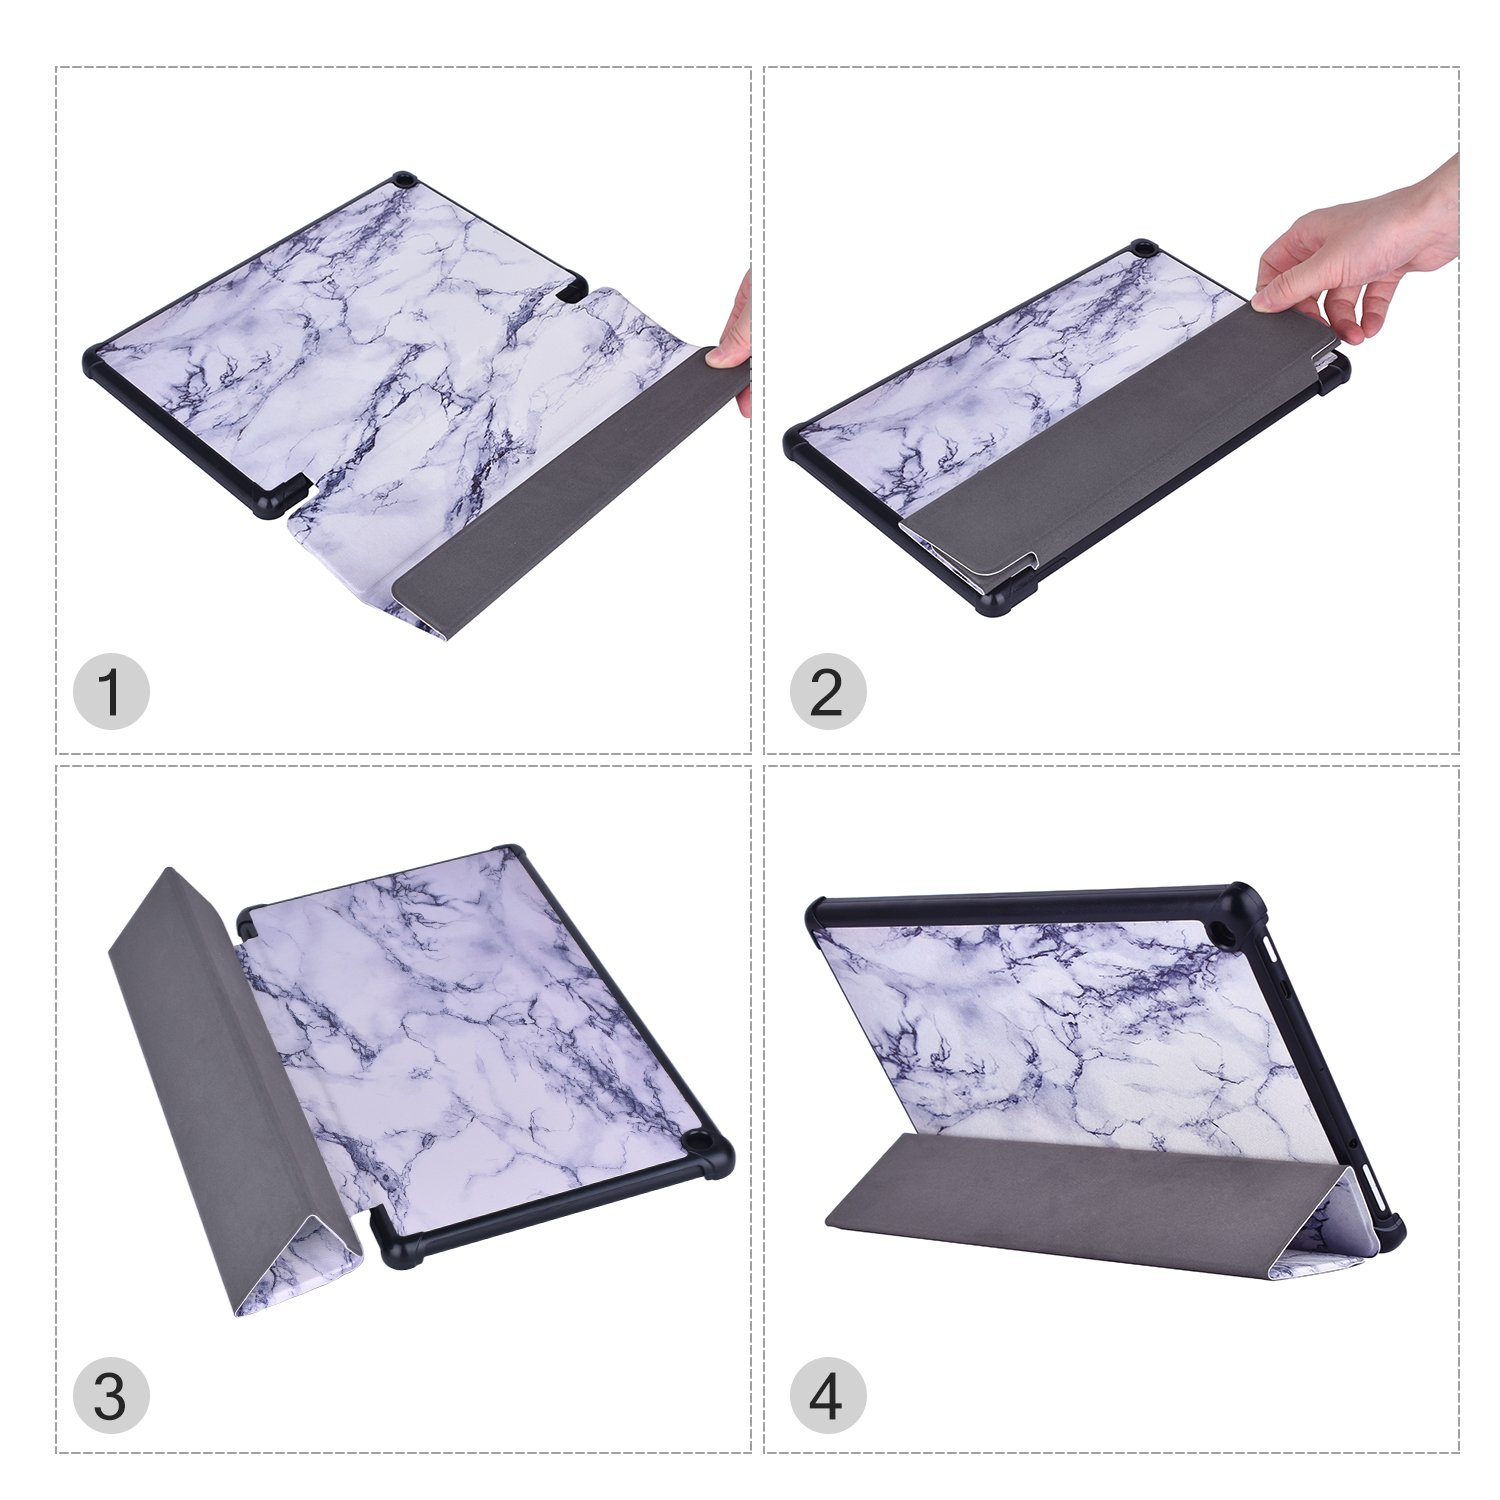 Dopup Fire 10 Case for All-New Fire HD 10 Tablet (7th Generation, 2017 Release),Protective Standing Cover with Auto Wake/Sleep Function (White Marble)